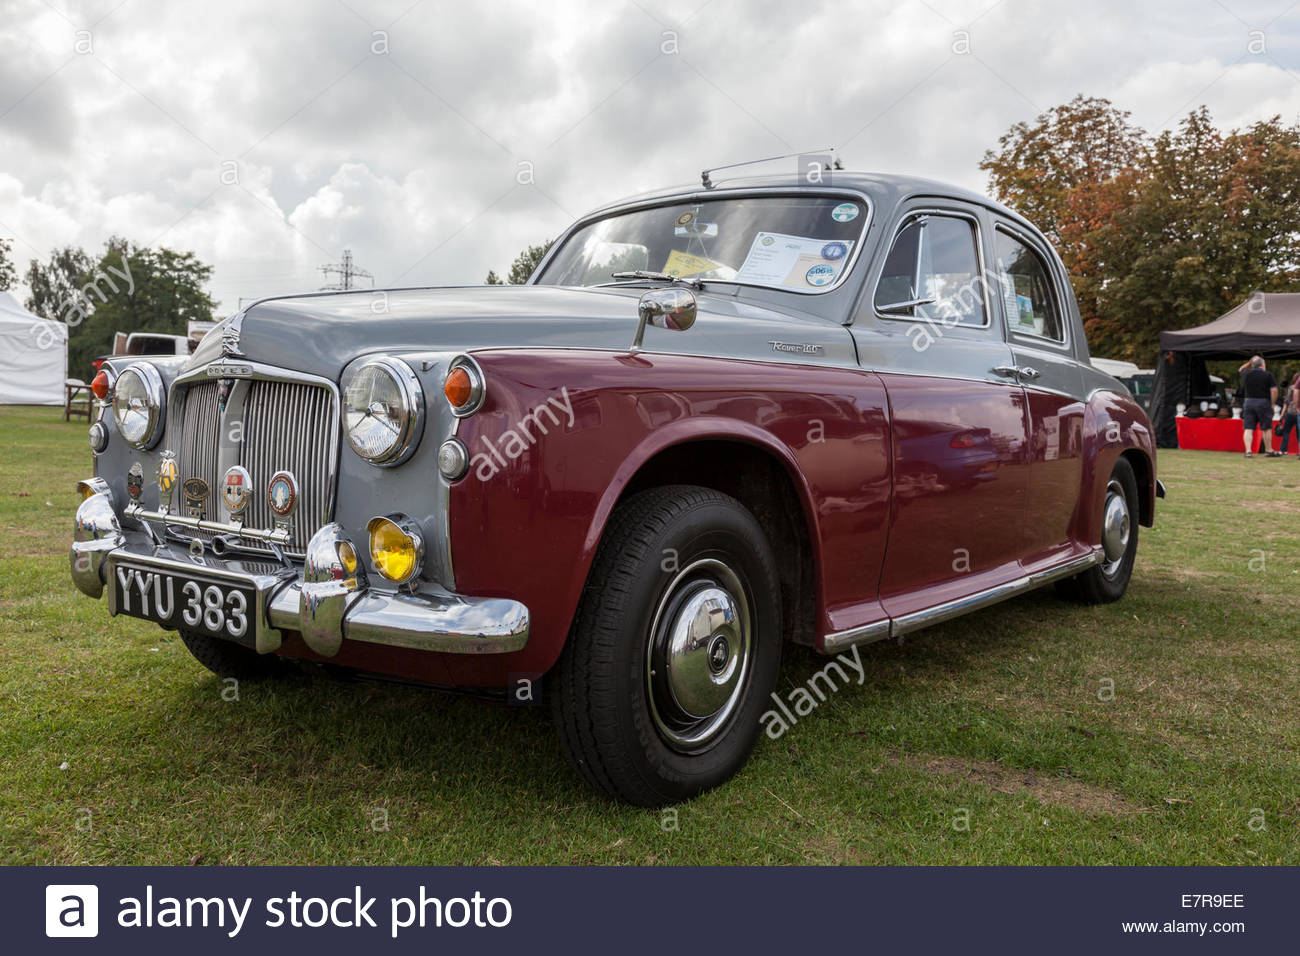 Rover 100 on show at a classic car event - year of manufacture 1960 ...